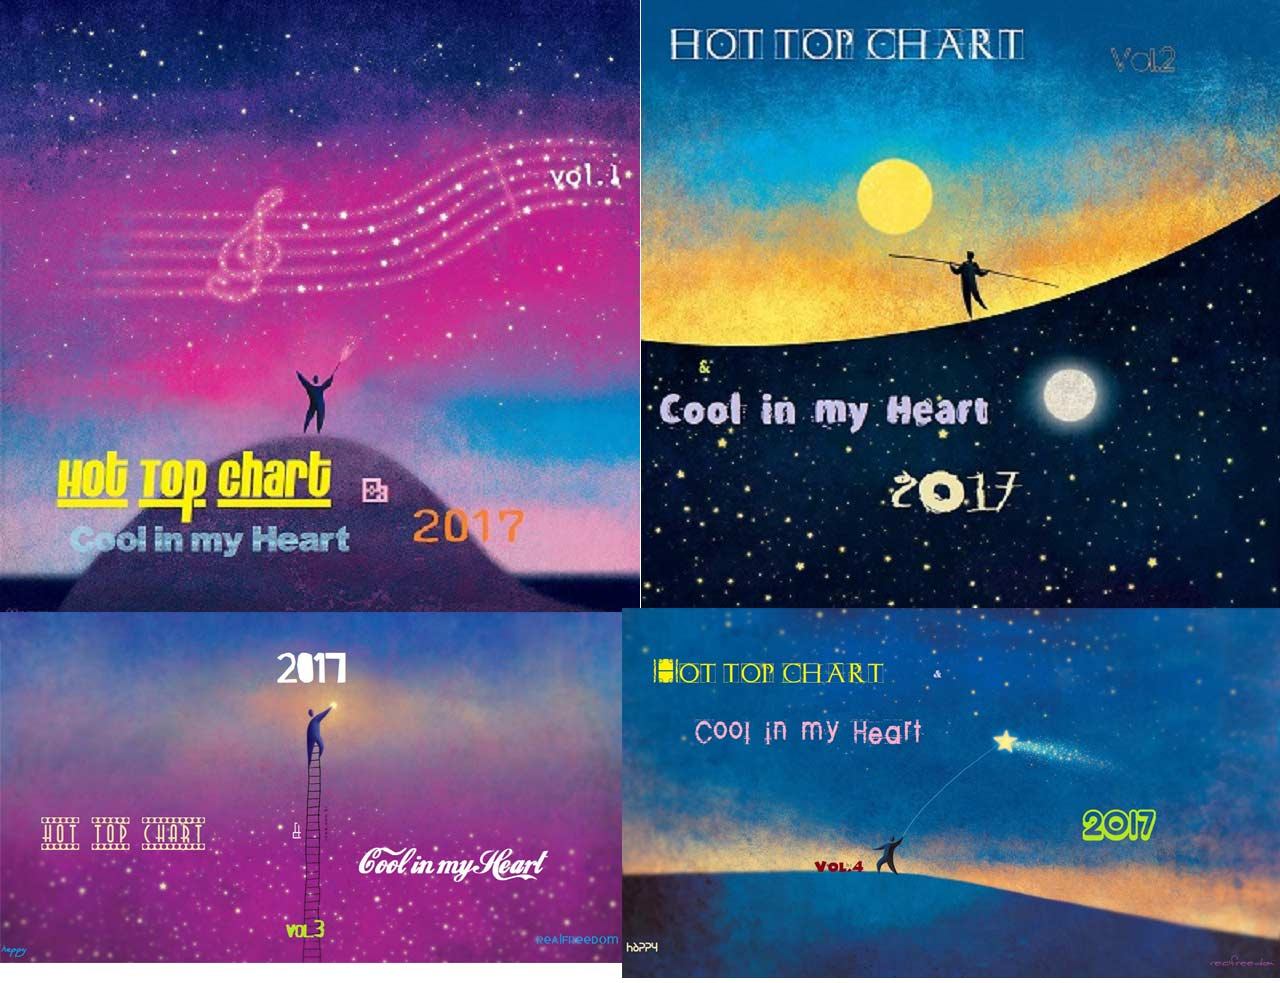 3877 Hot Top Chart & Cool in my Heart 2017 vol.1-2